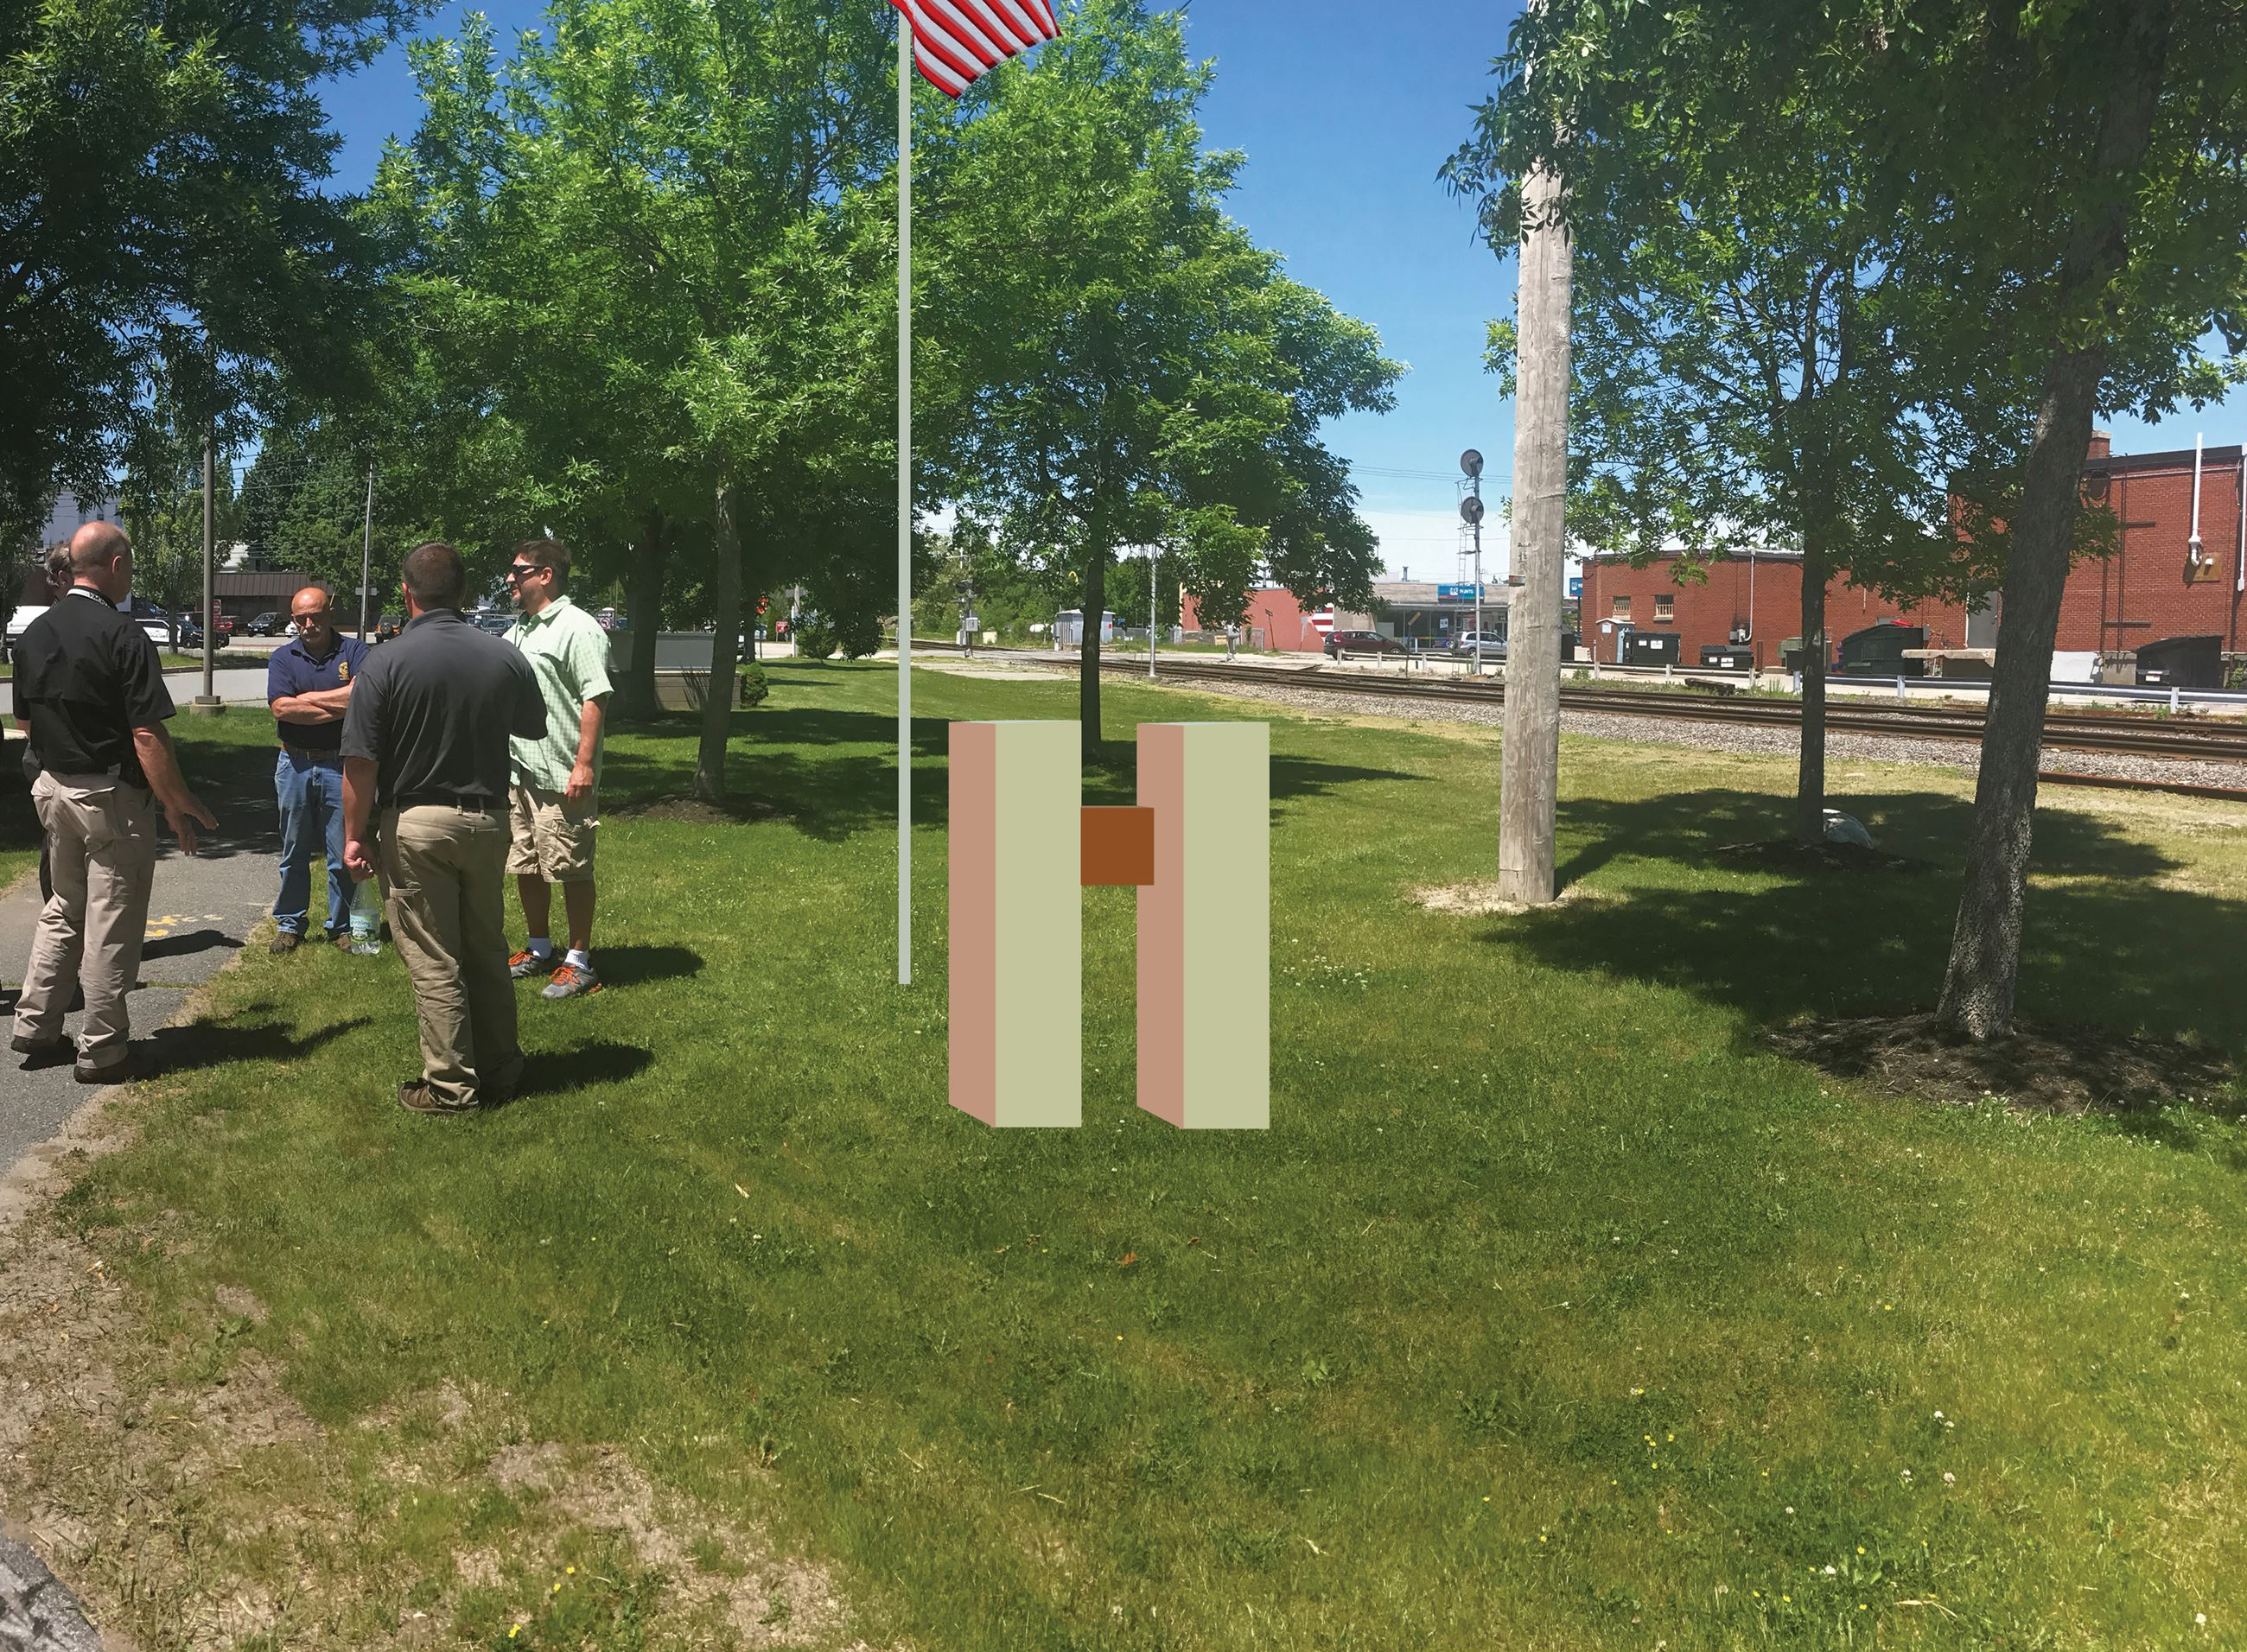 Artist Rendering of 9-11 Memorial in Grassy Area